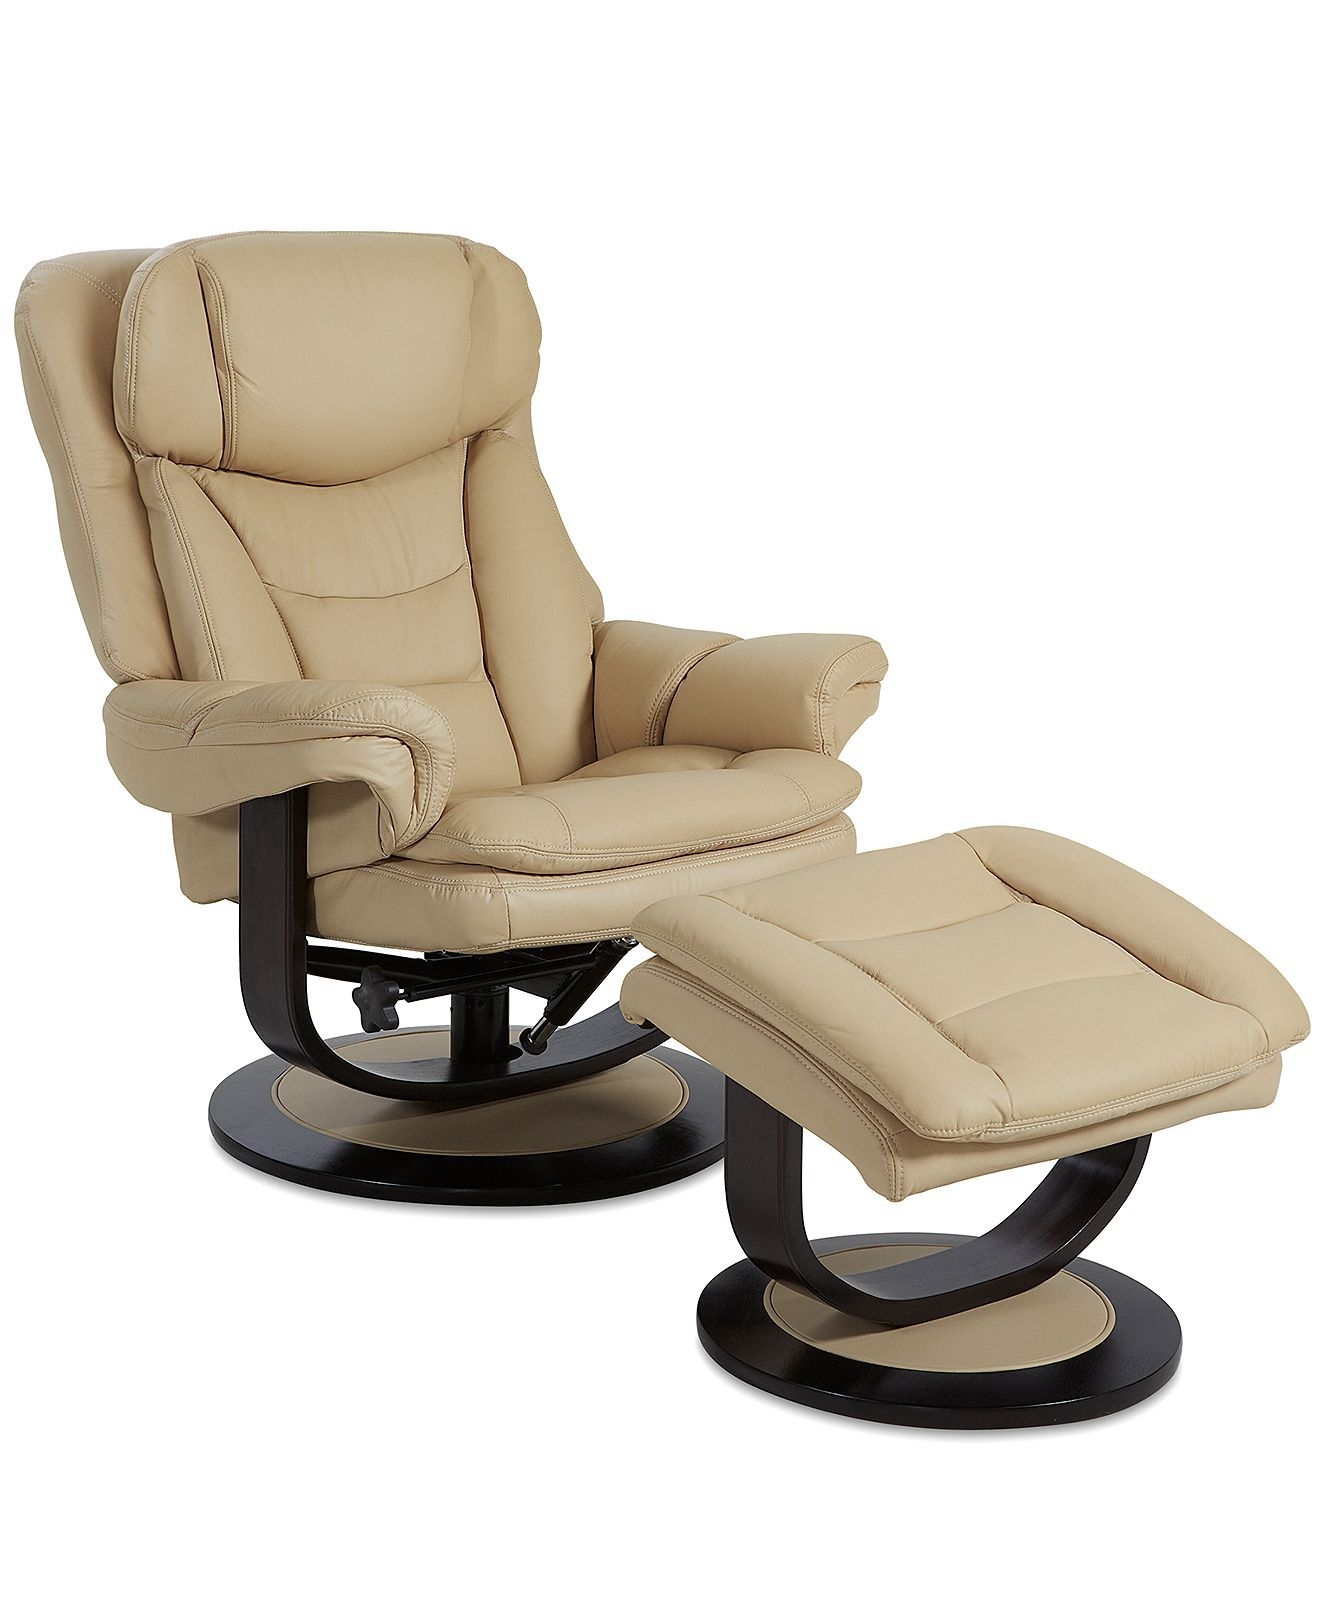 reclining chair with ottoman leather luxury dining chairs recliner ideas on foter 1